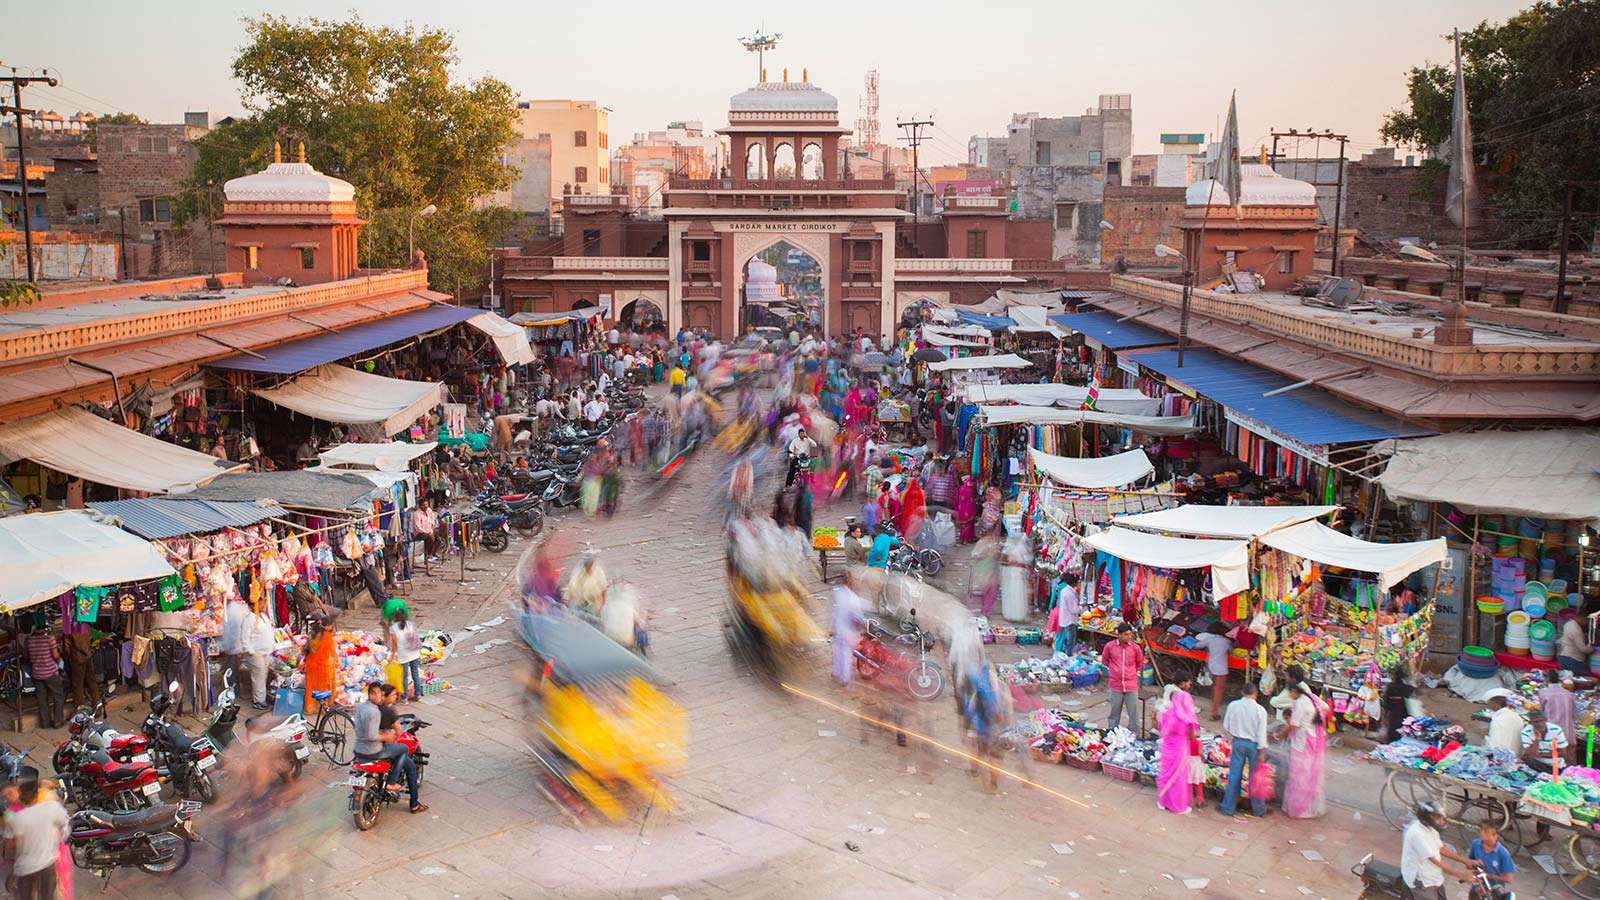 Image of street scene in India